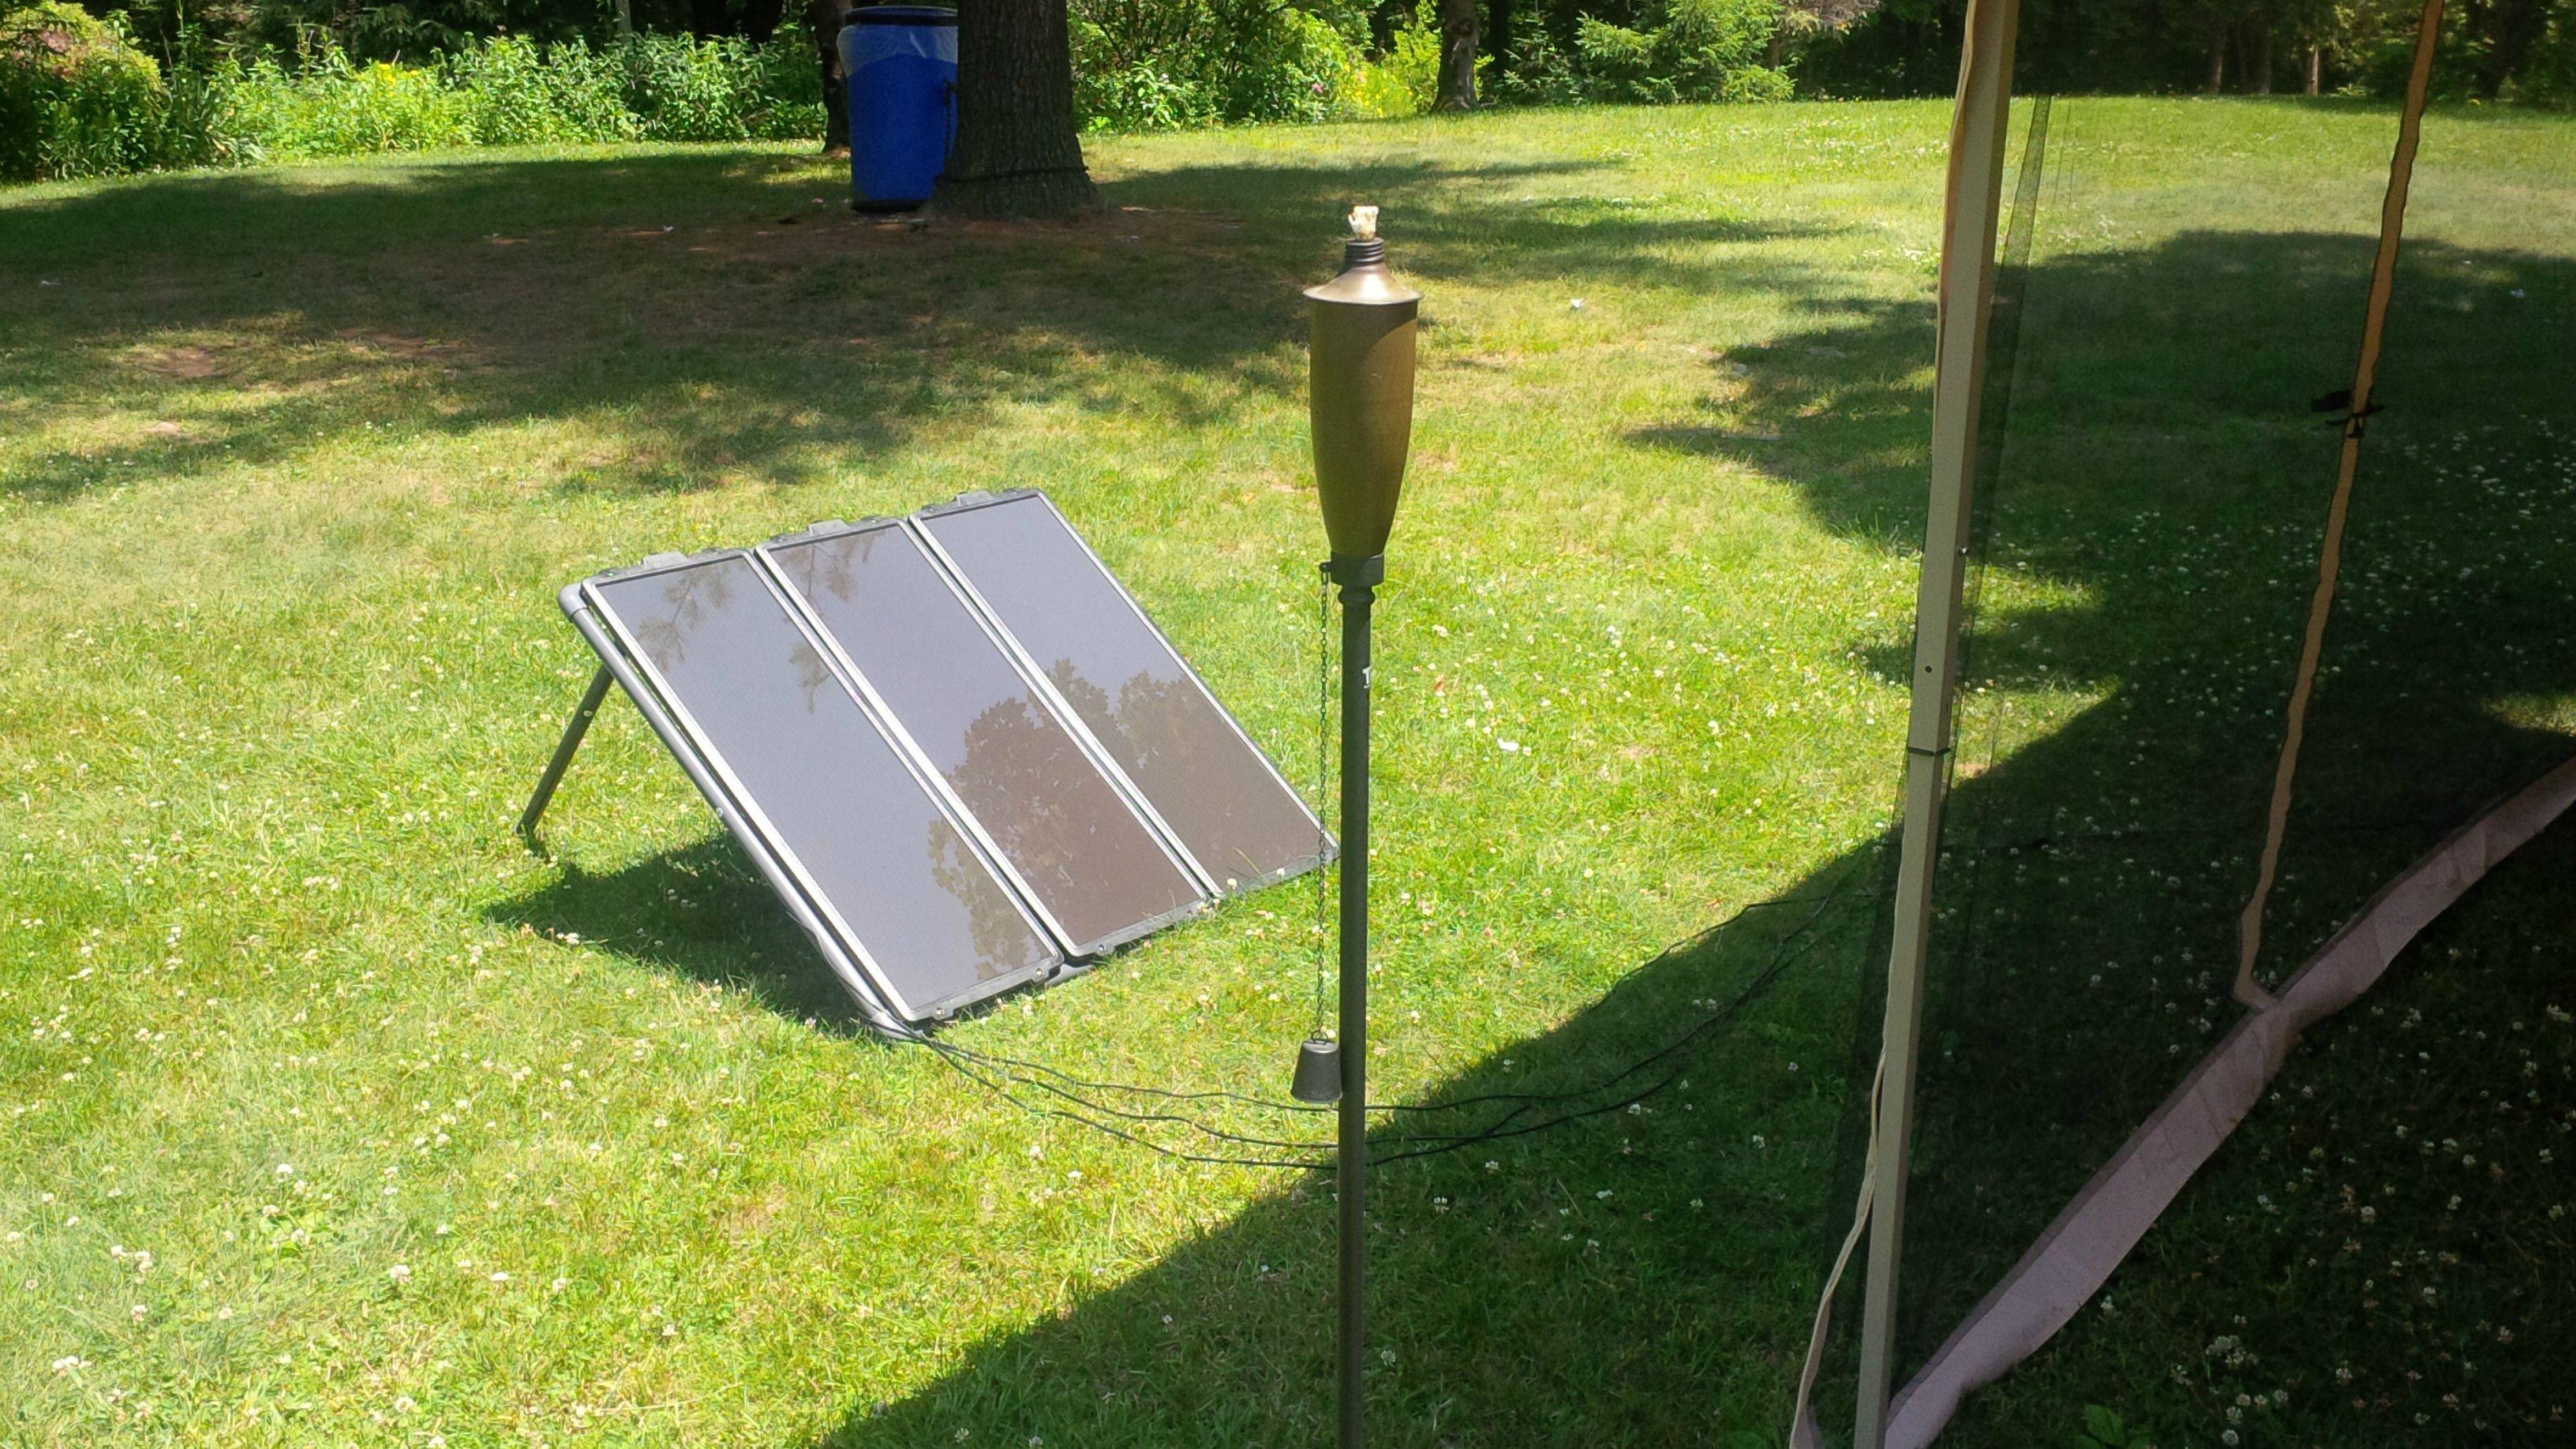 5-k2jji-field-day-2014-5a-nny-digital-station-100-solar